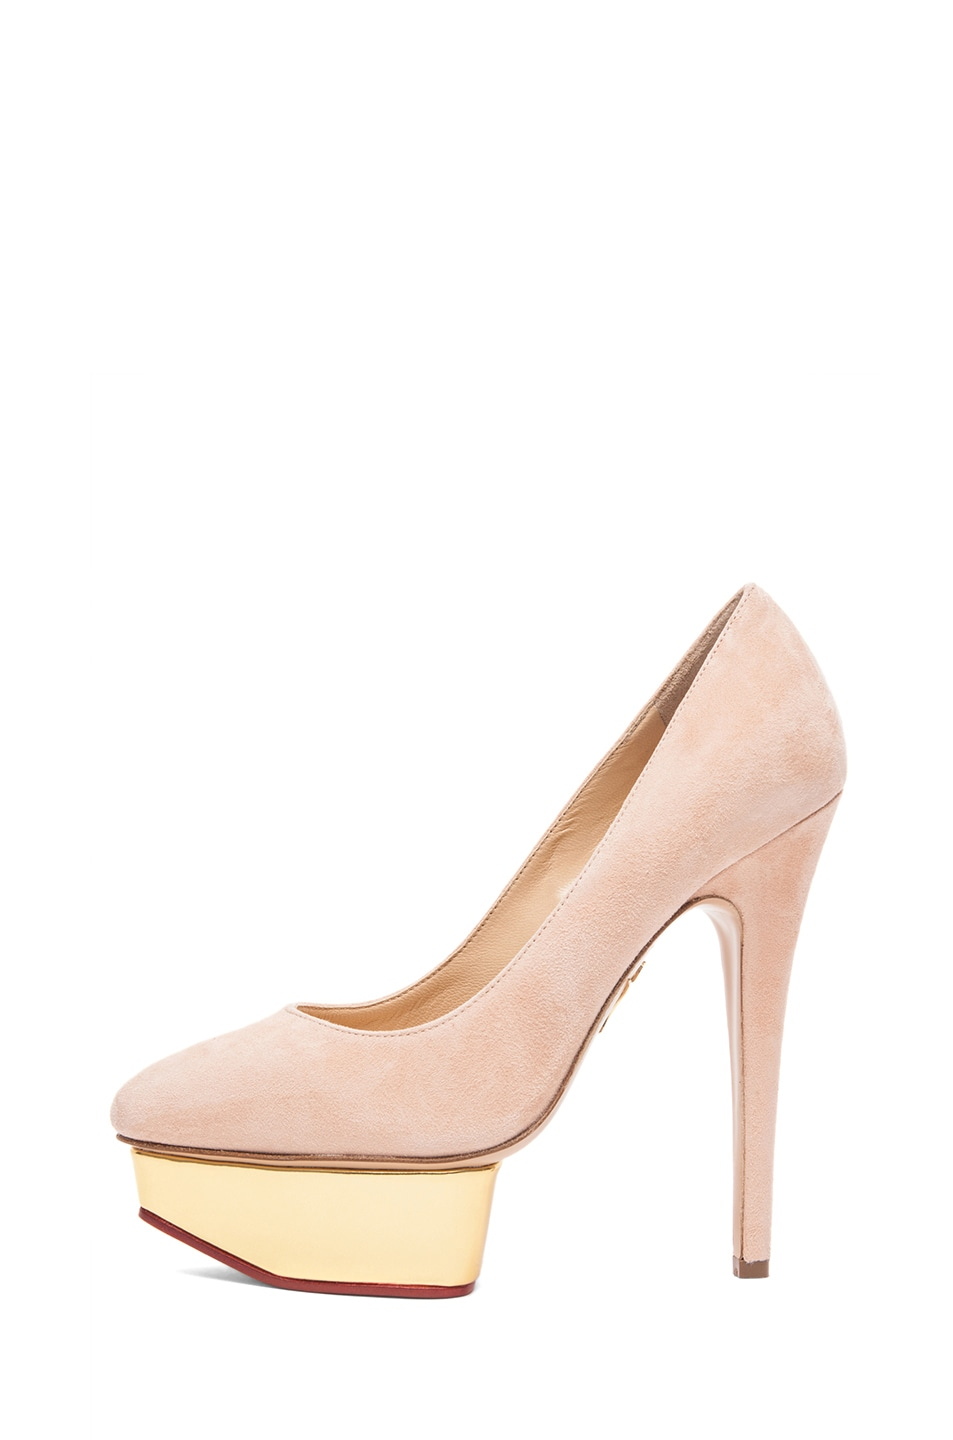 Image 1 of Charlotte Olympia Cindy Suede Pumps in Blush